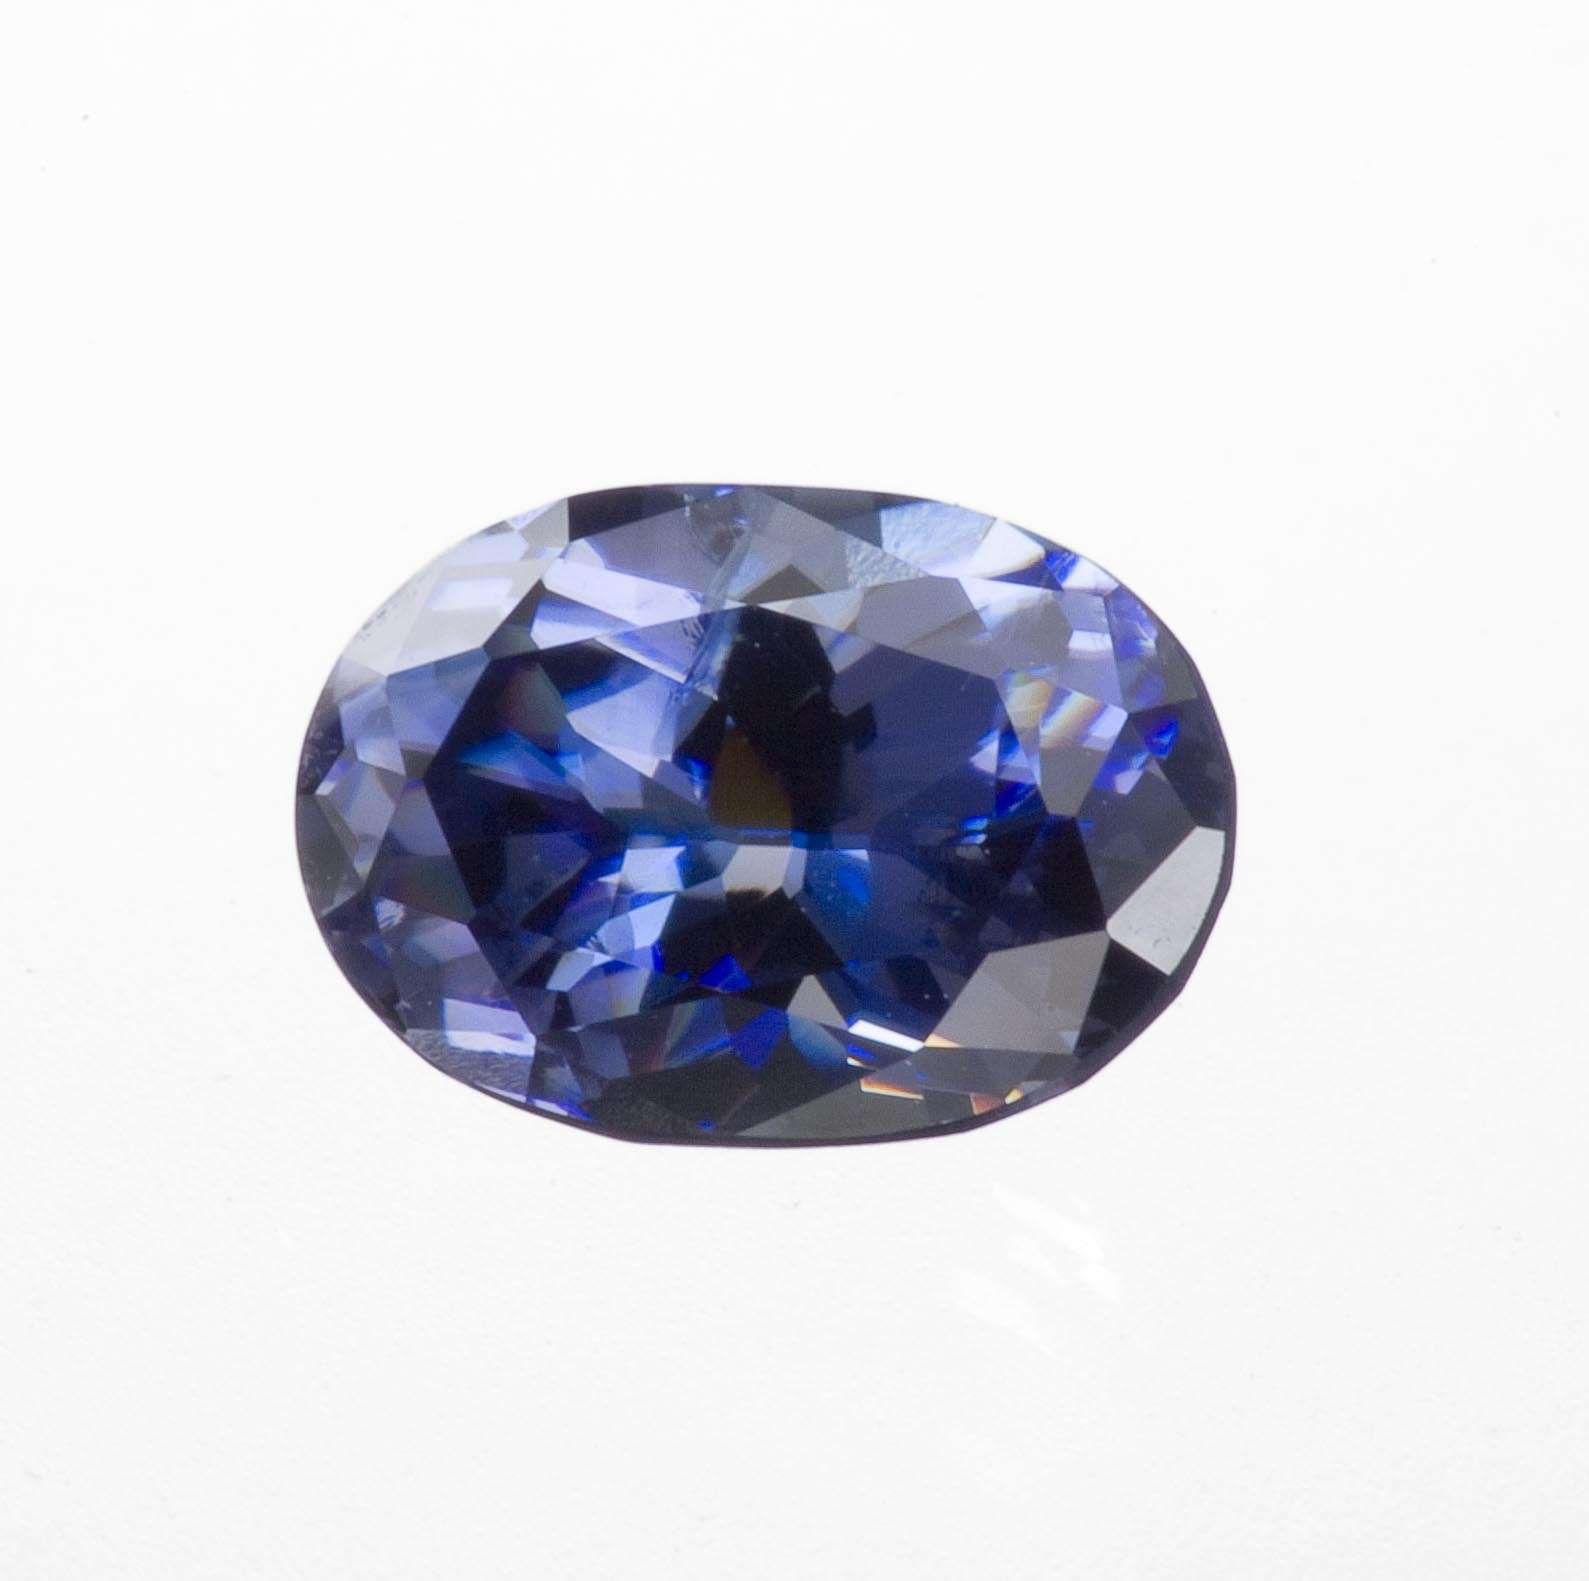 Benitoites excellent gem quality transparency rarely exceed carats